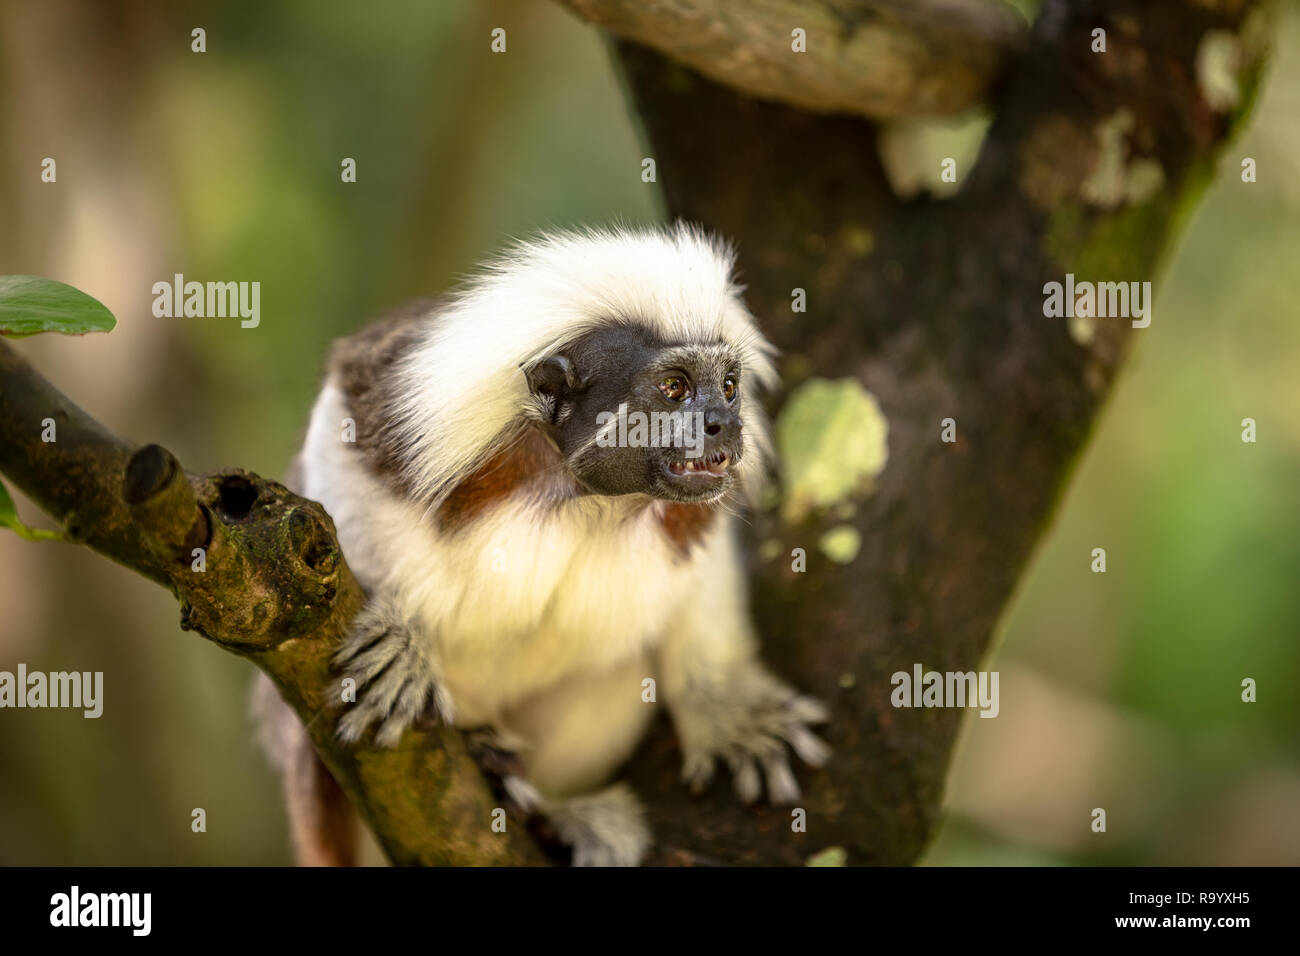 Cotton Top Tamarin Monkey, Saguinus oedipus, sitting on a tree branch - Stock Image